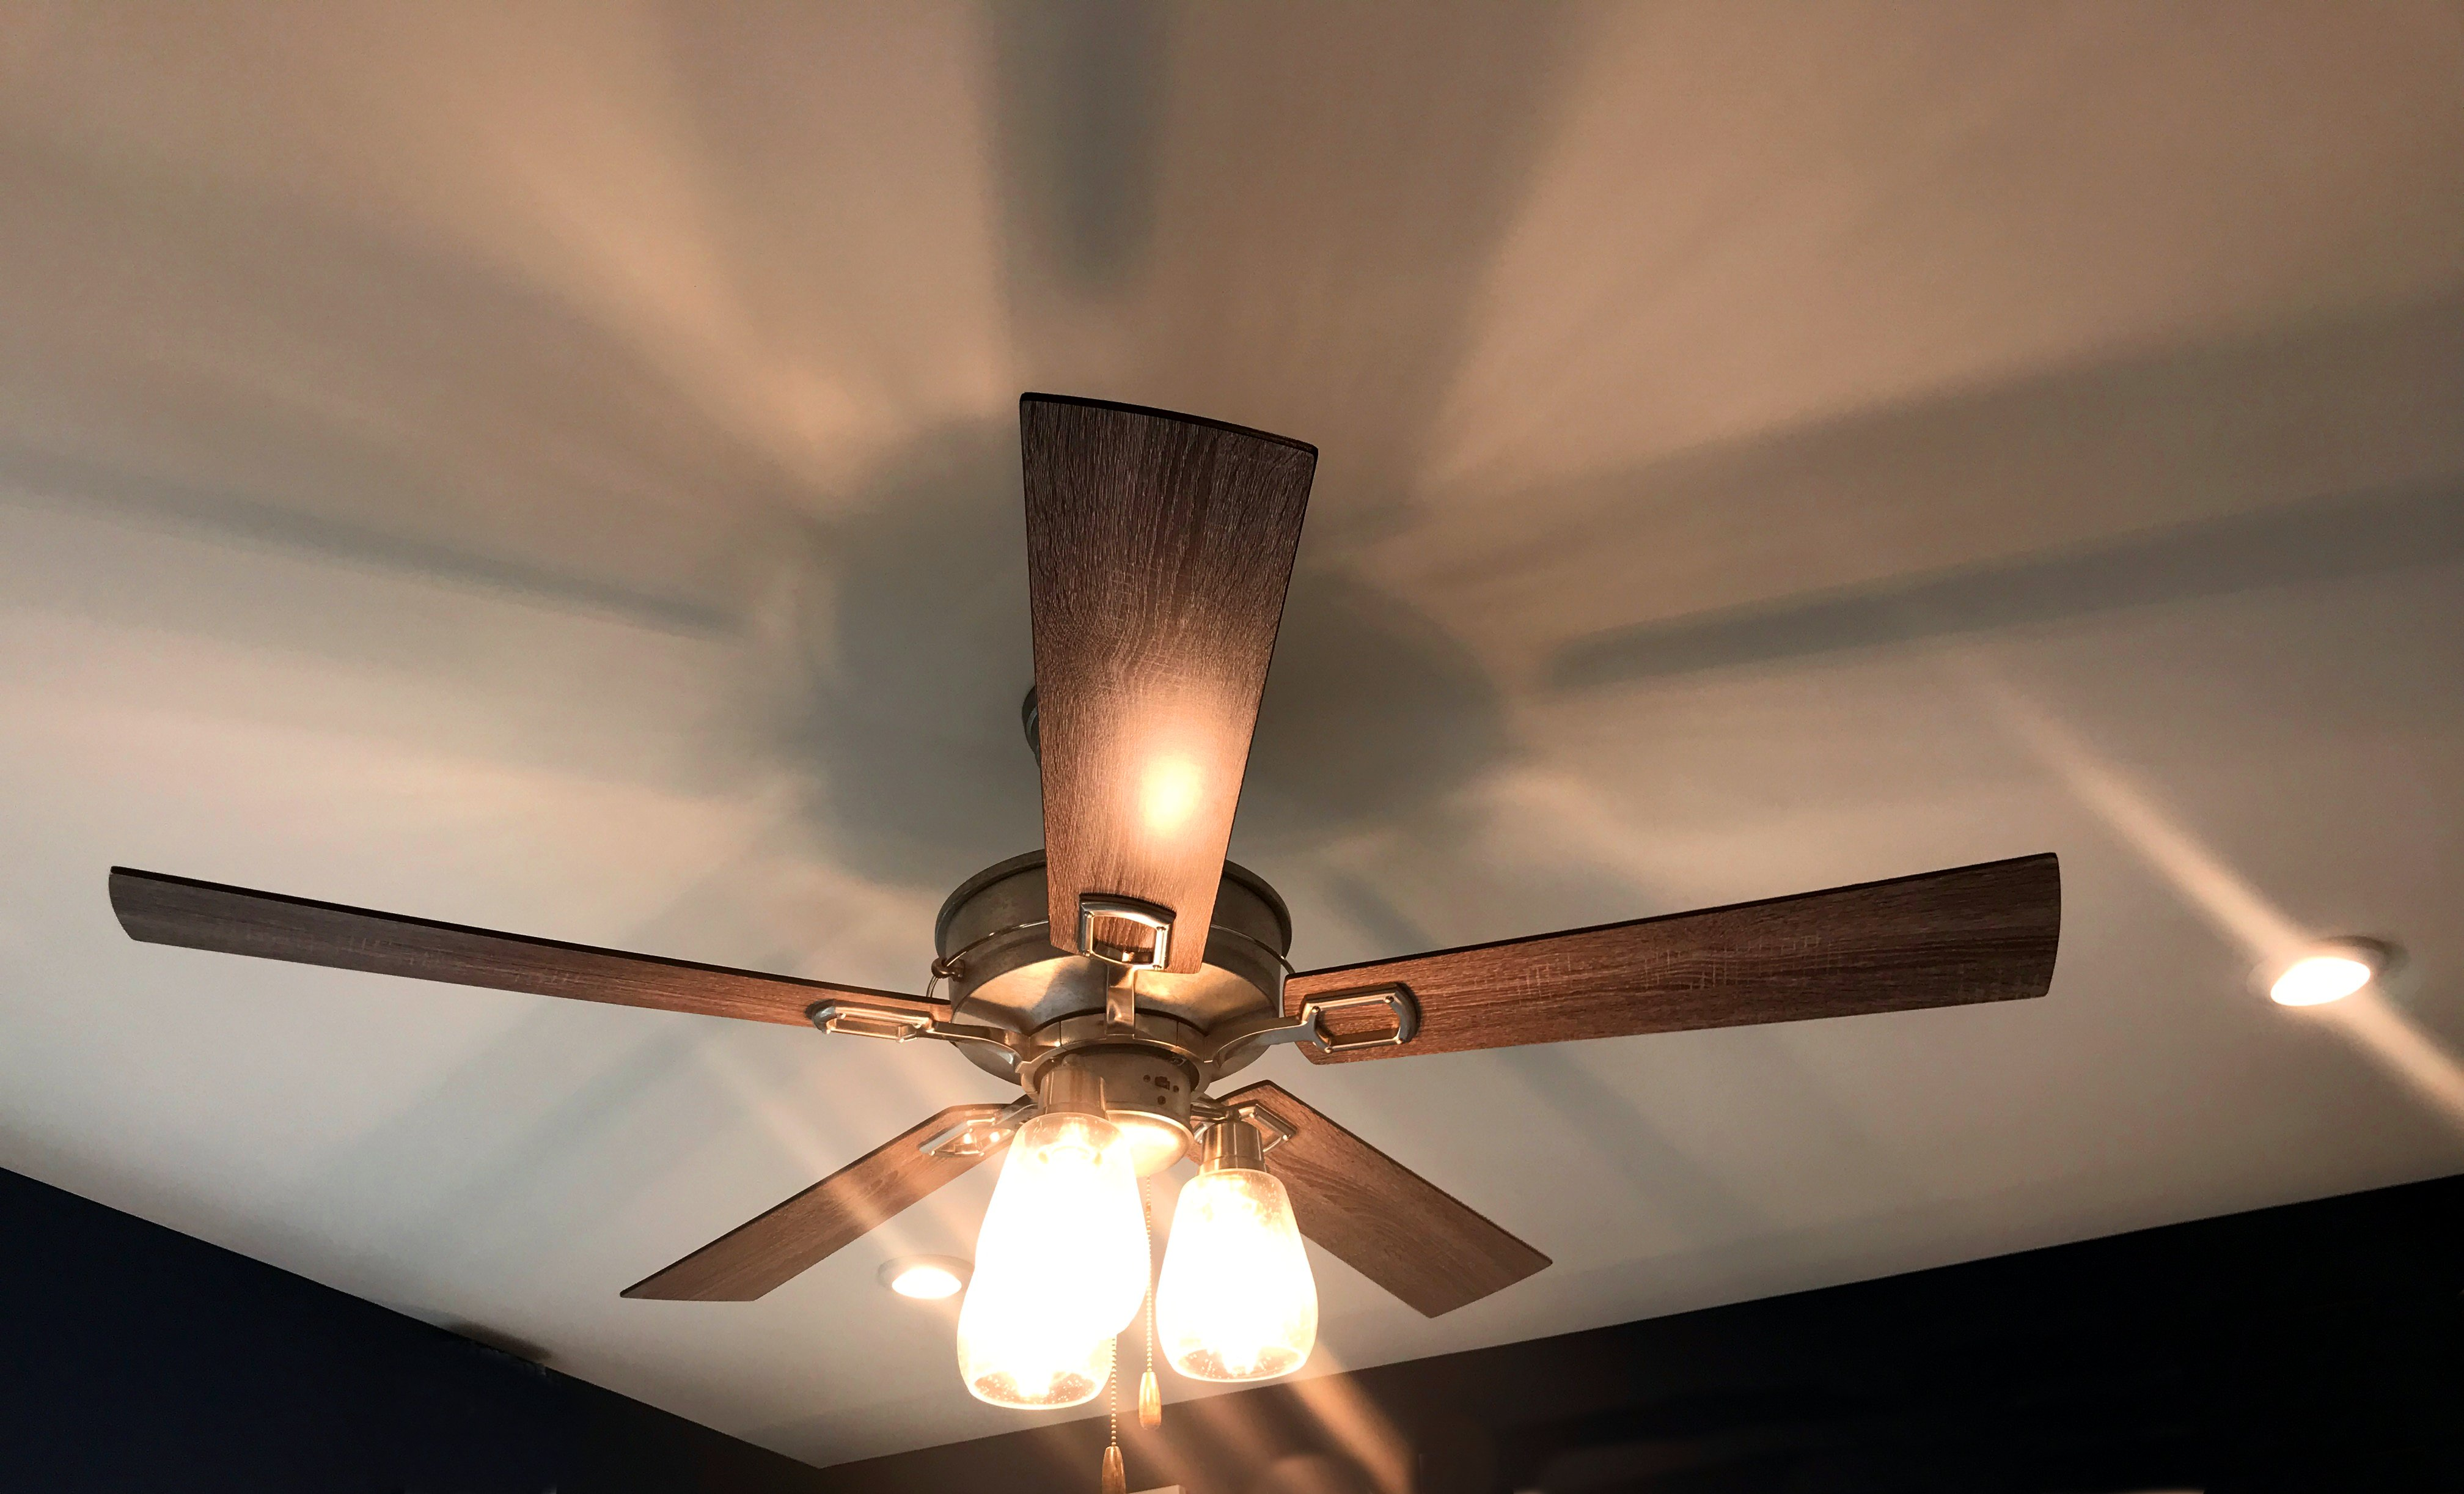 Electricians Two Rivers, Ceiling Fan Odenton 21113